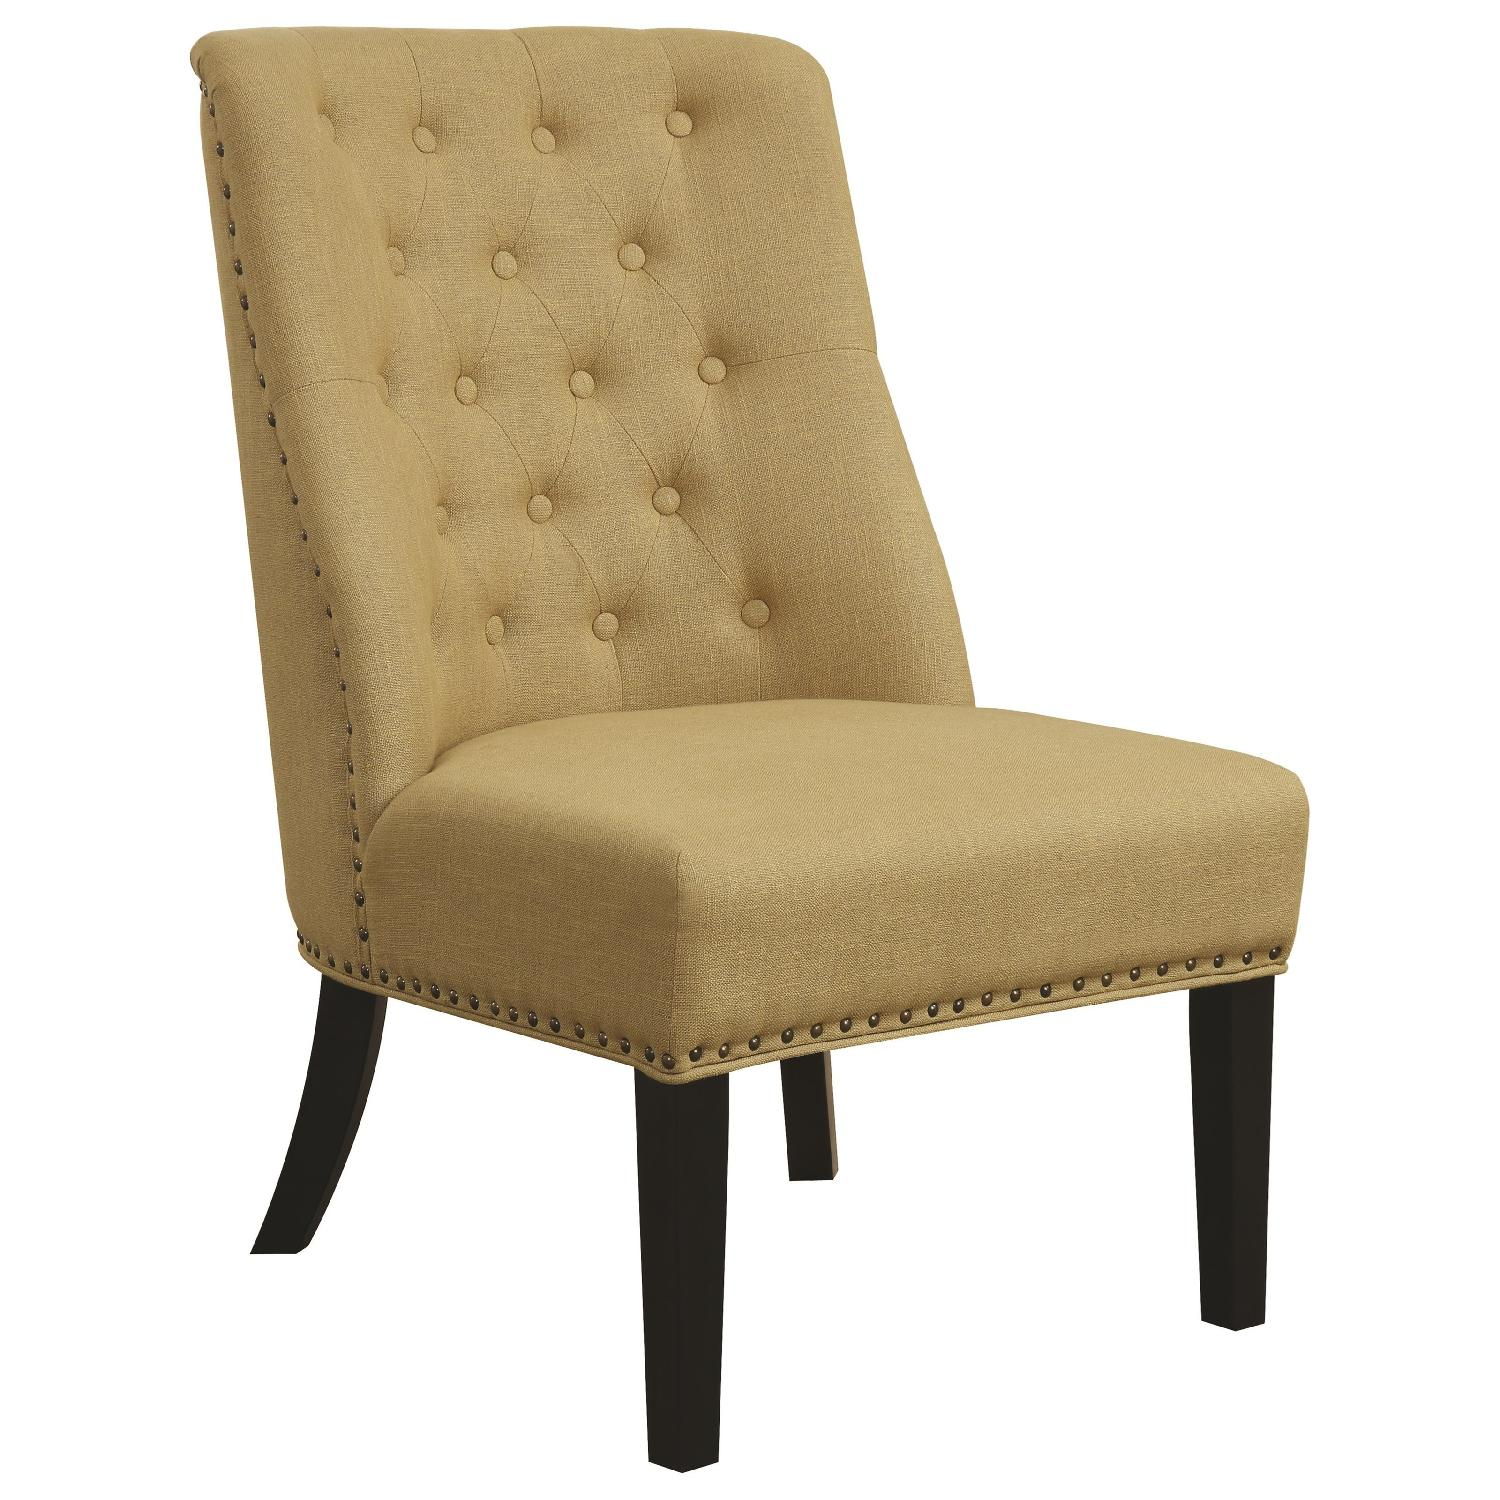 Accent Chair w/ Tufted Back & Nailhead Accent in Grey Fabric